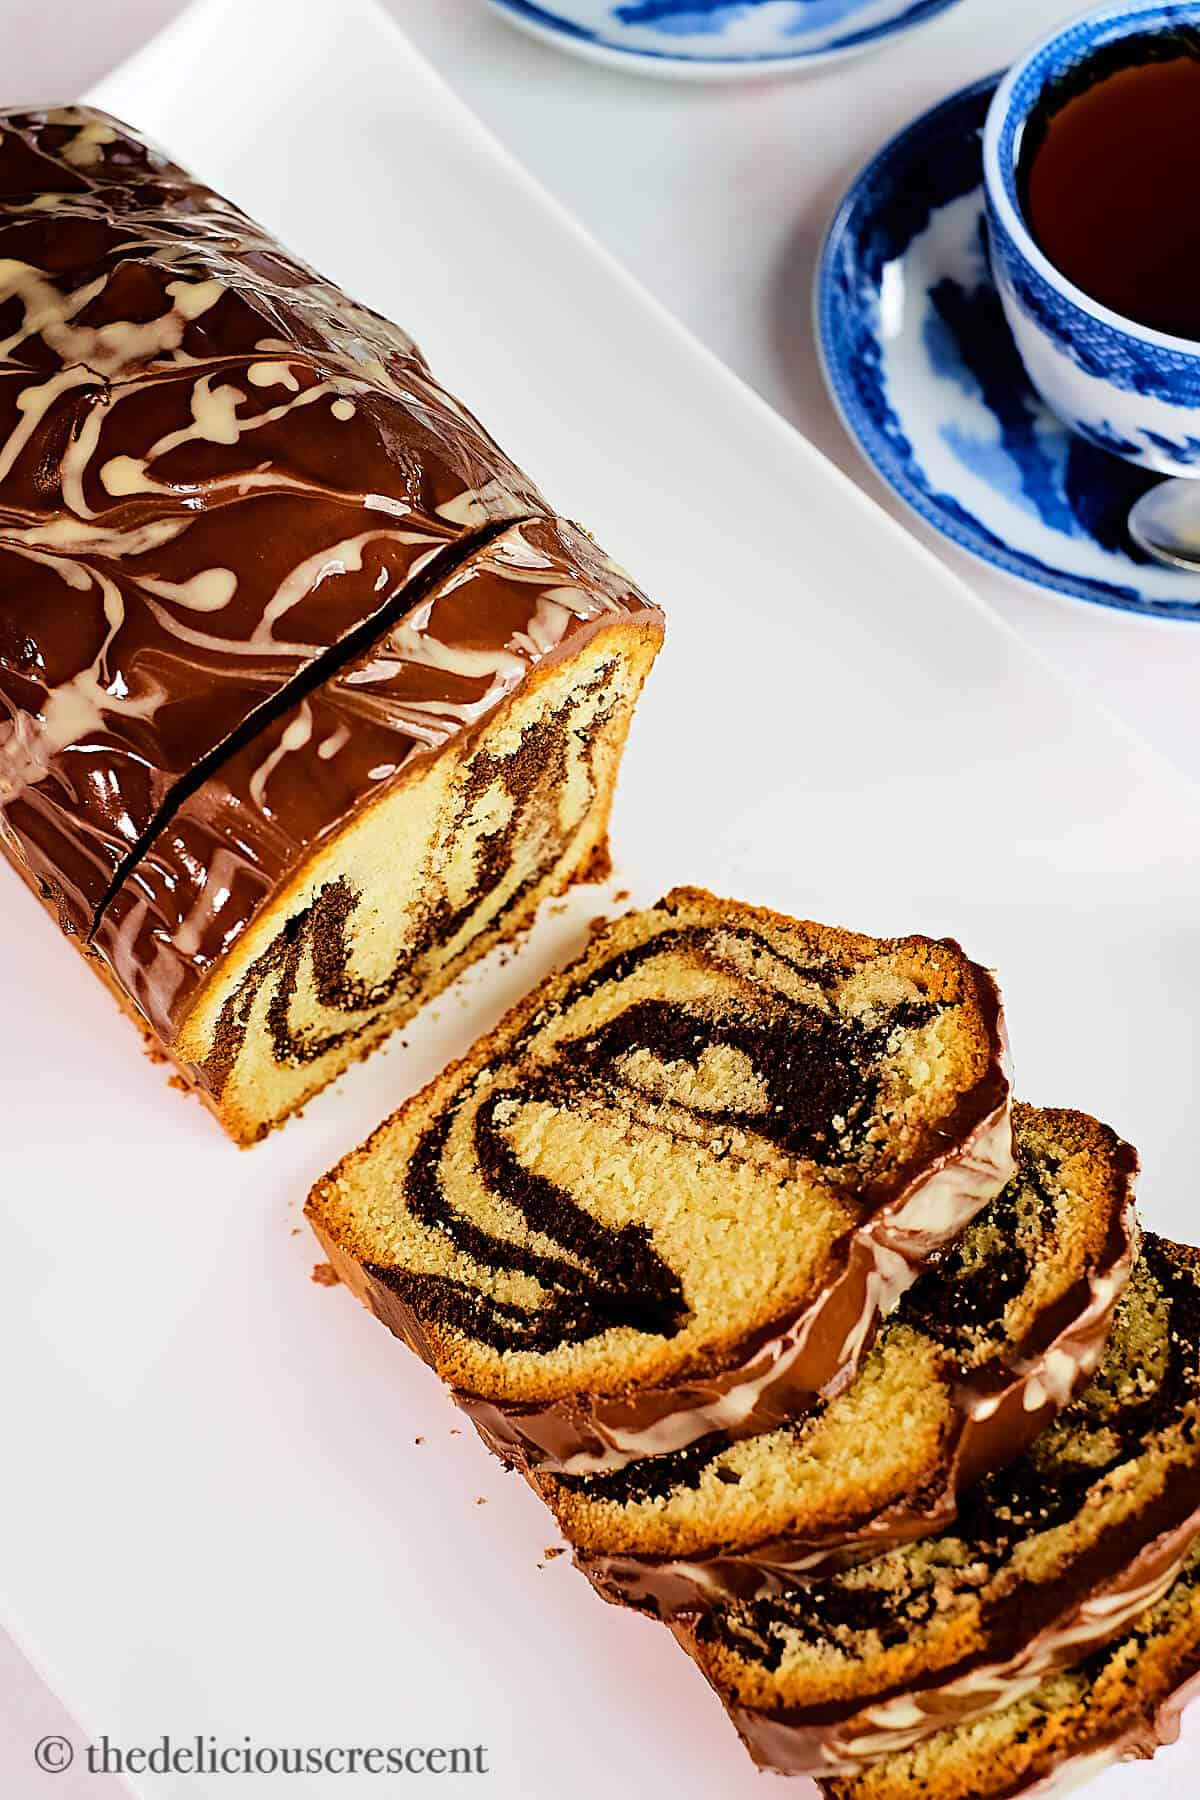 Overhead view of a loaf cake made with tahini and chocolate.